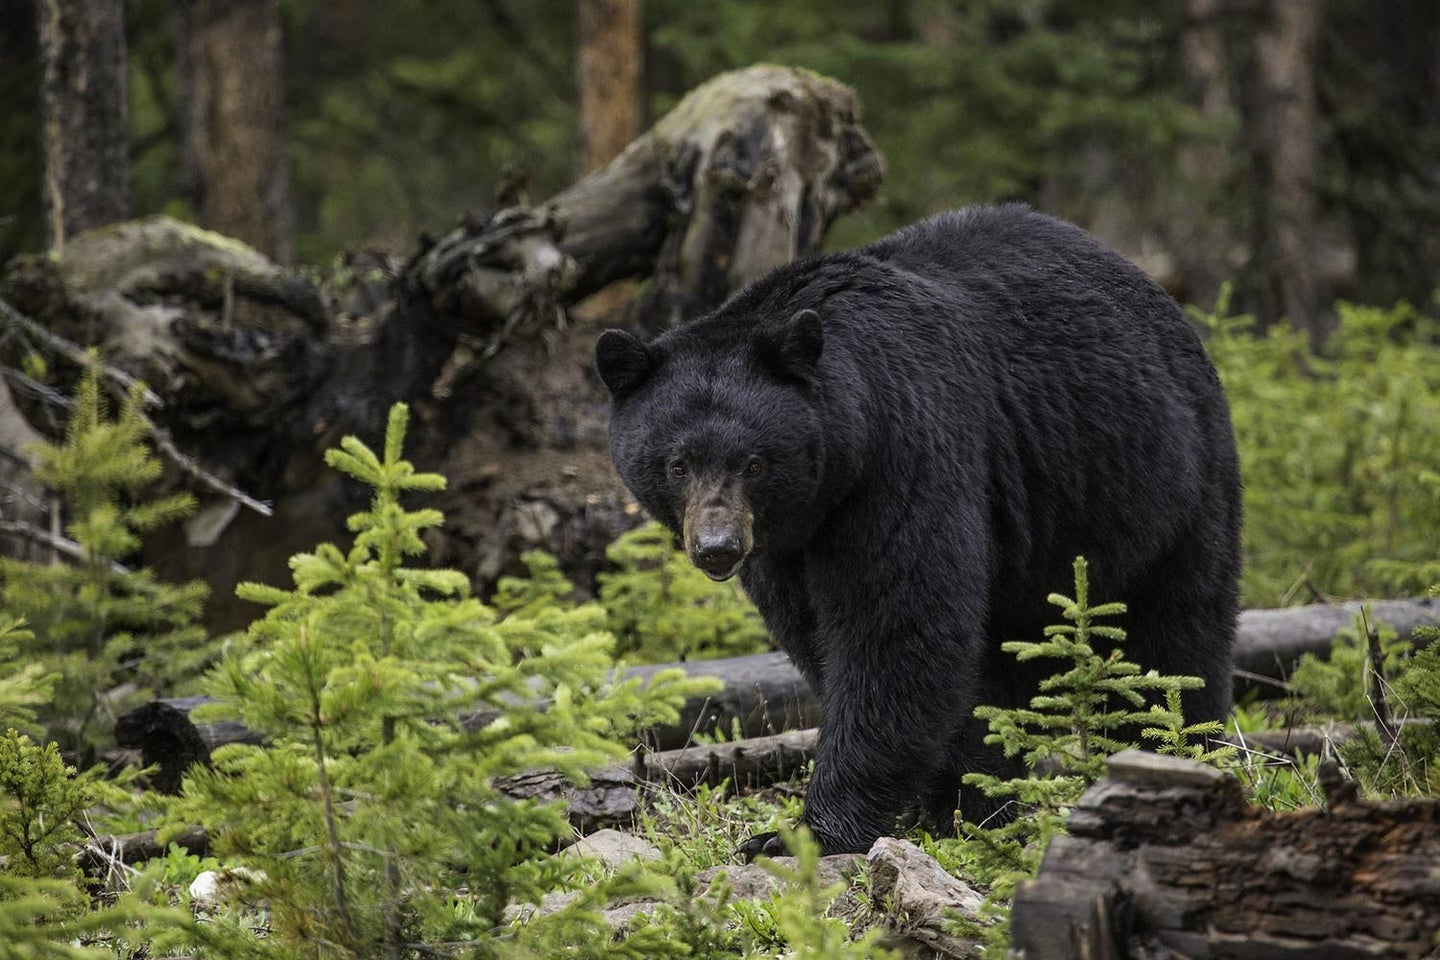 A black bear wandering in the woods.